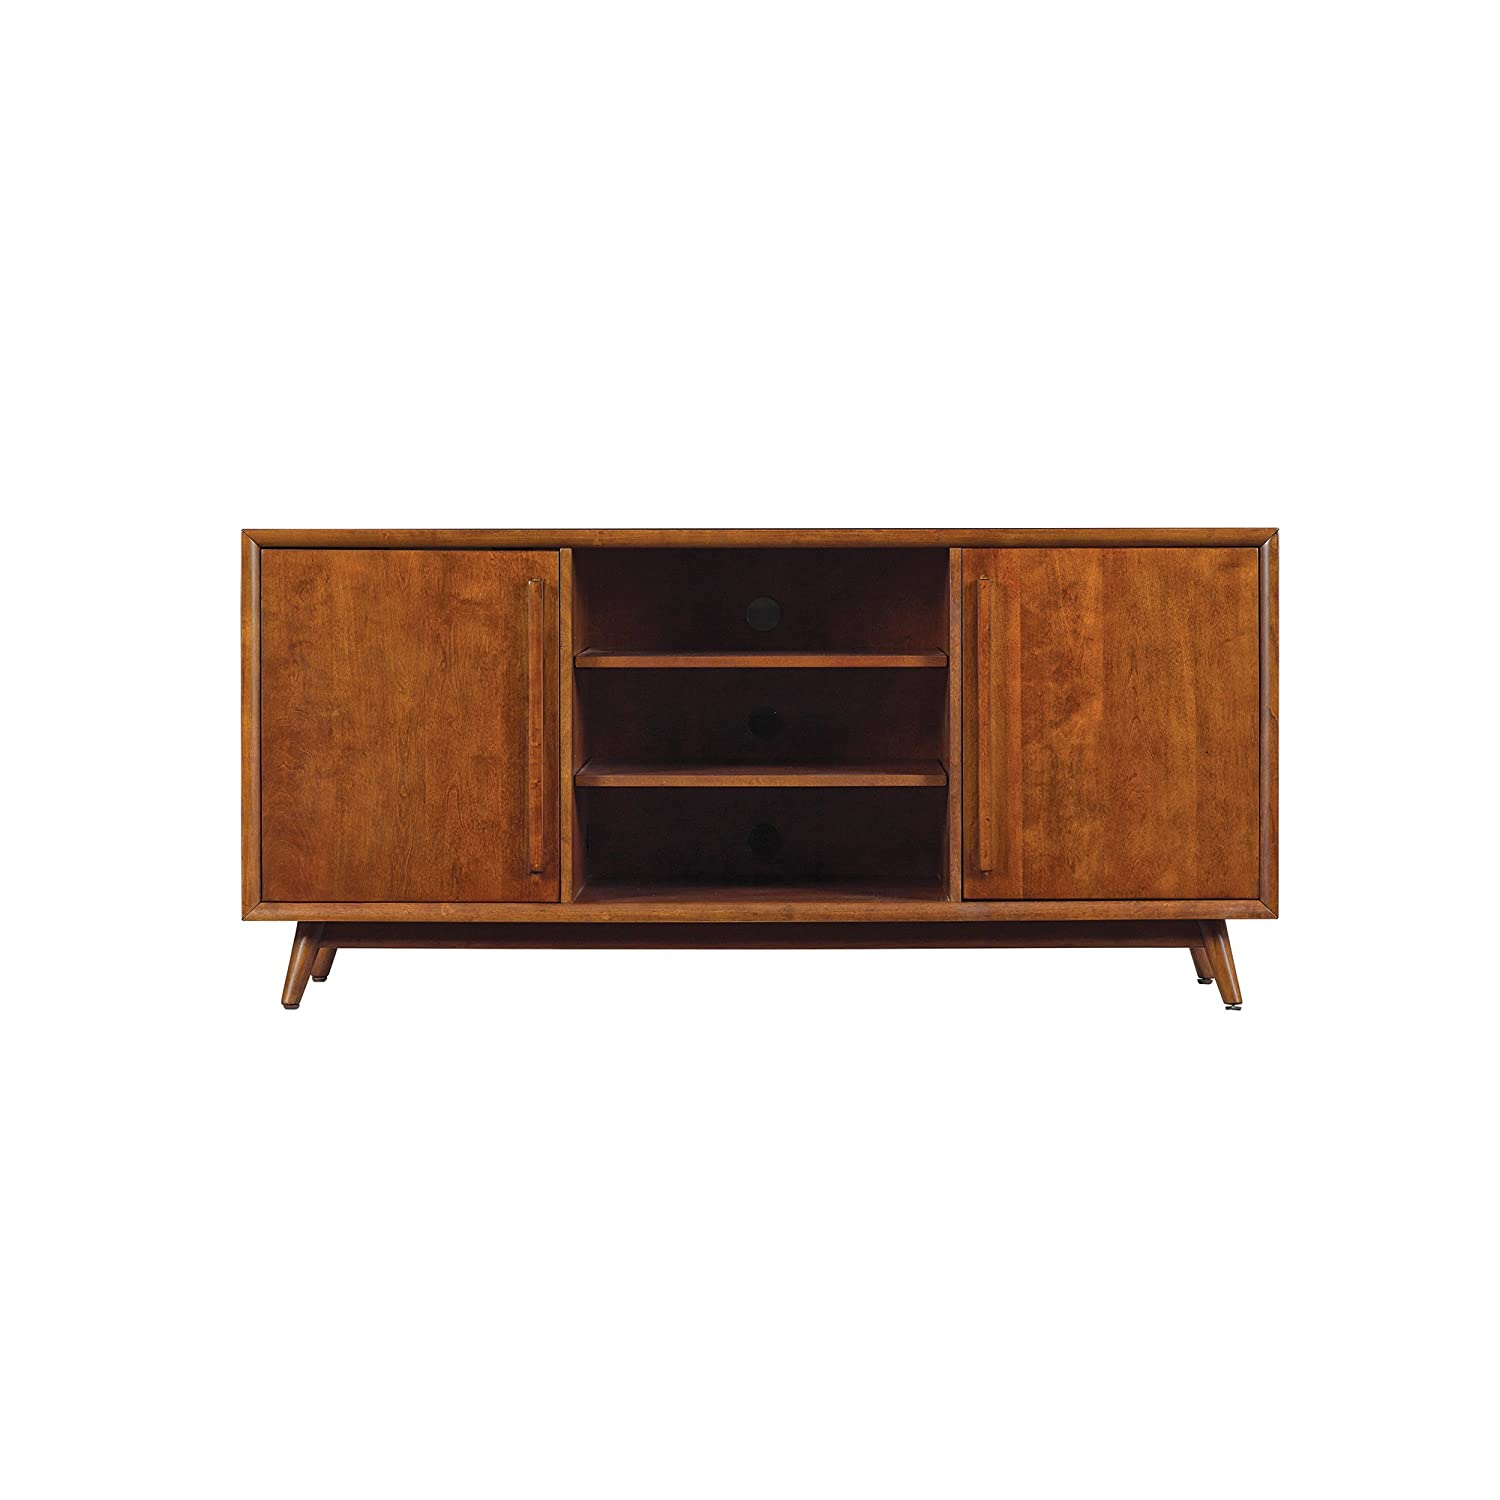 Pamari 299214 Rivara TV Stand for TVs up to 60 inches and Maximum Weight 75 lbs., Mahogany Cherry